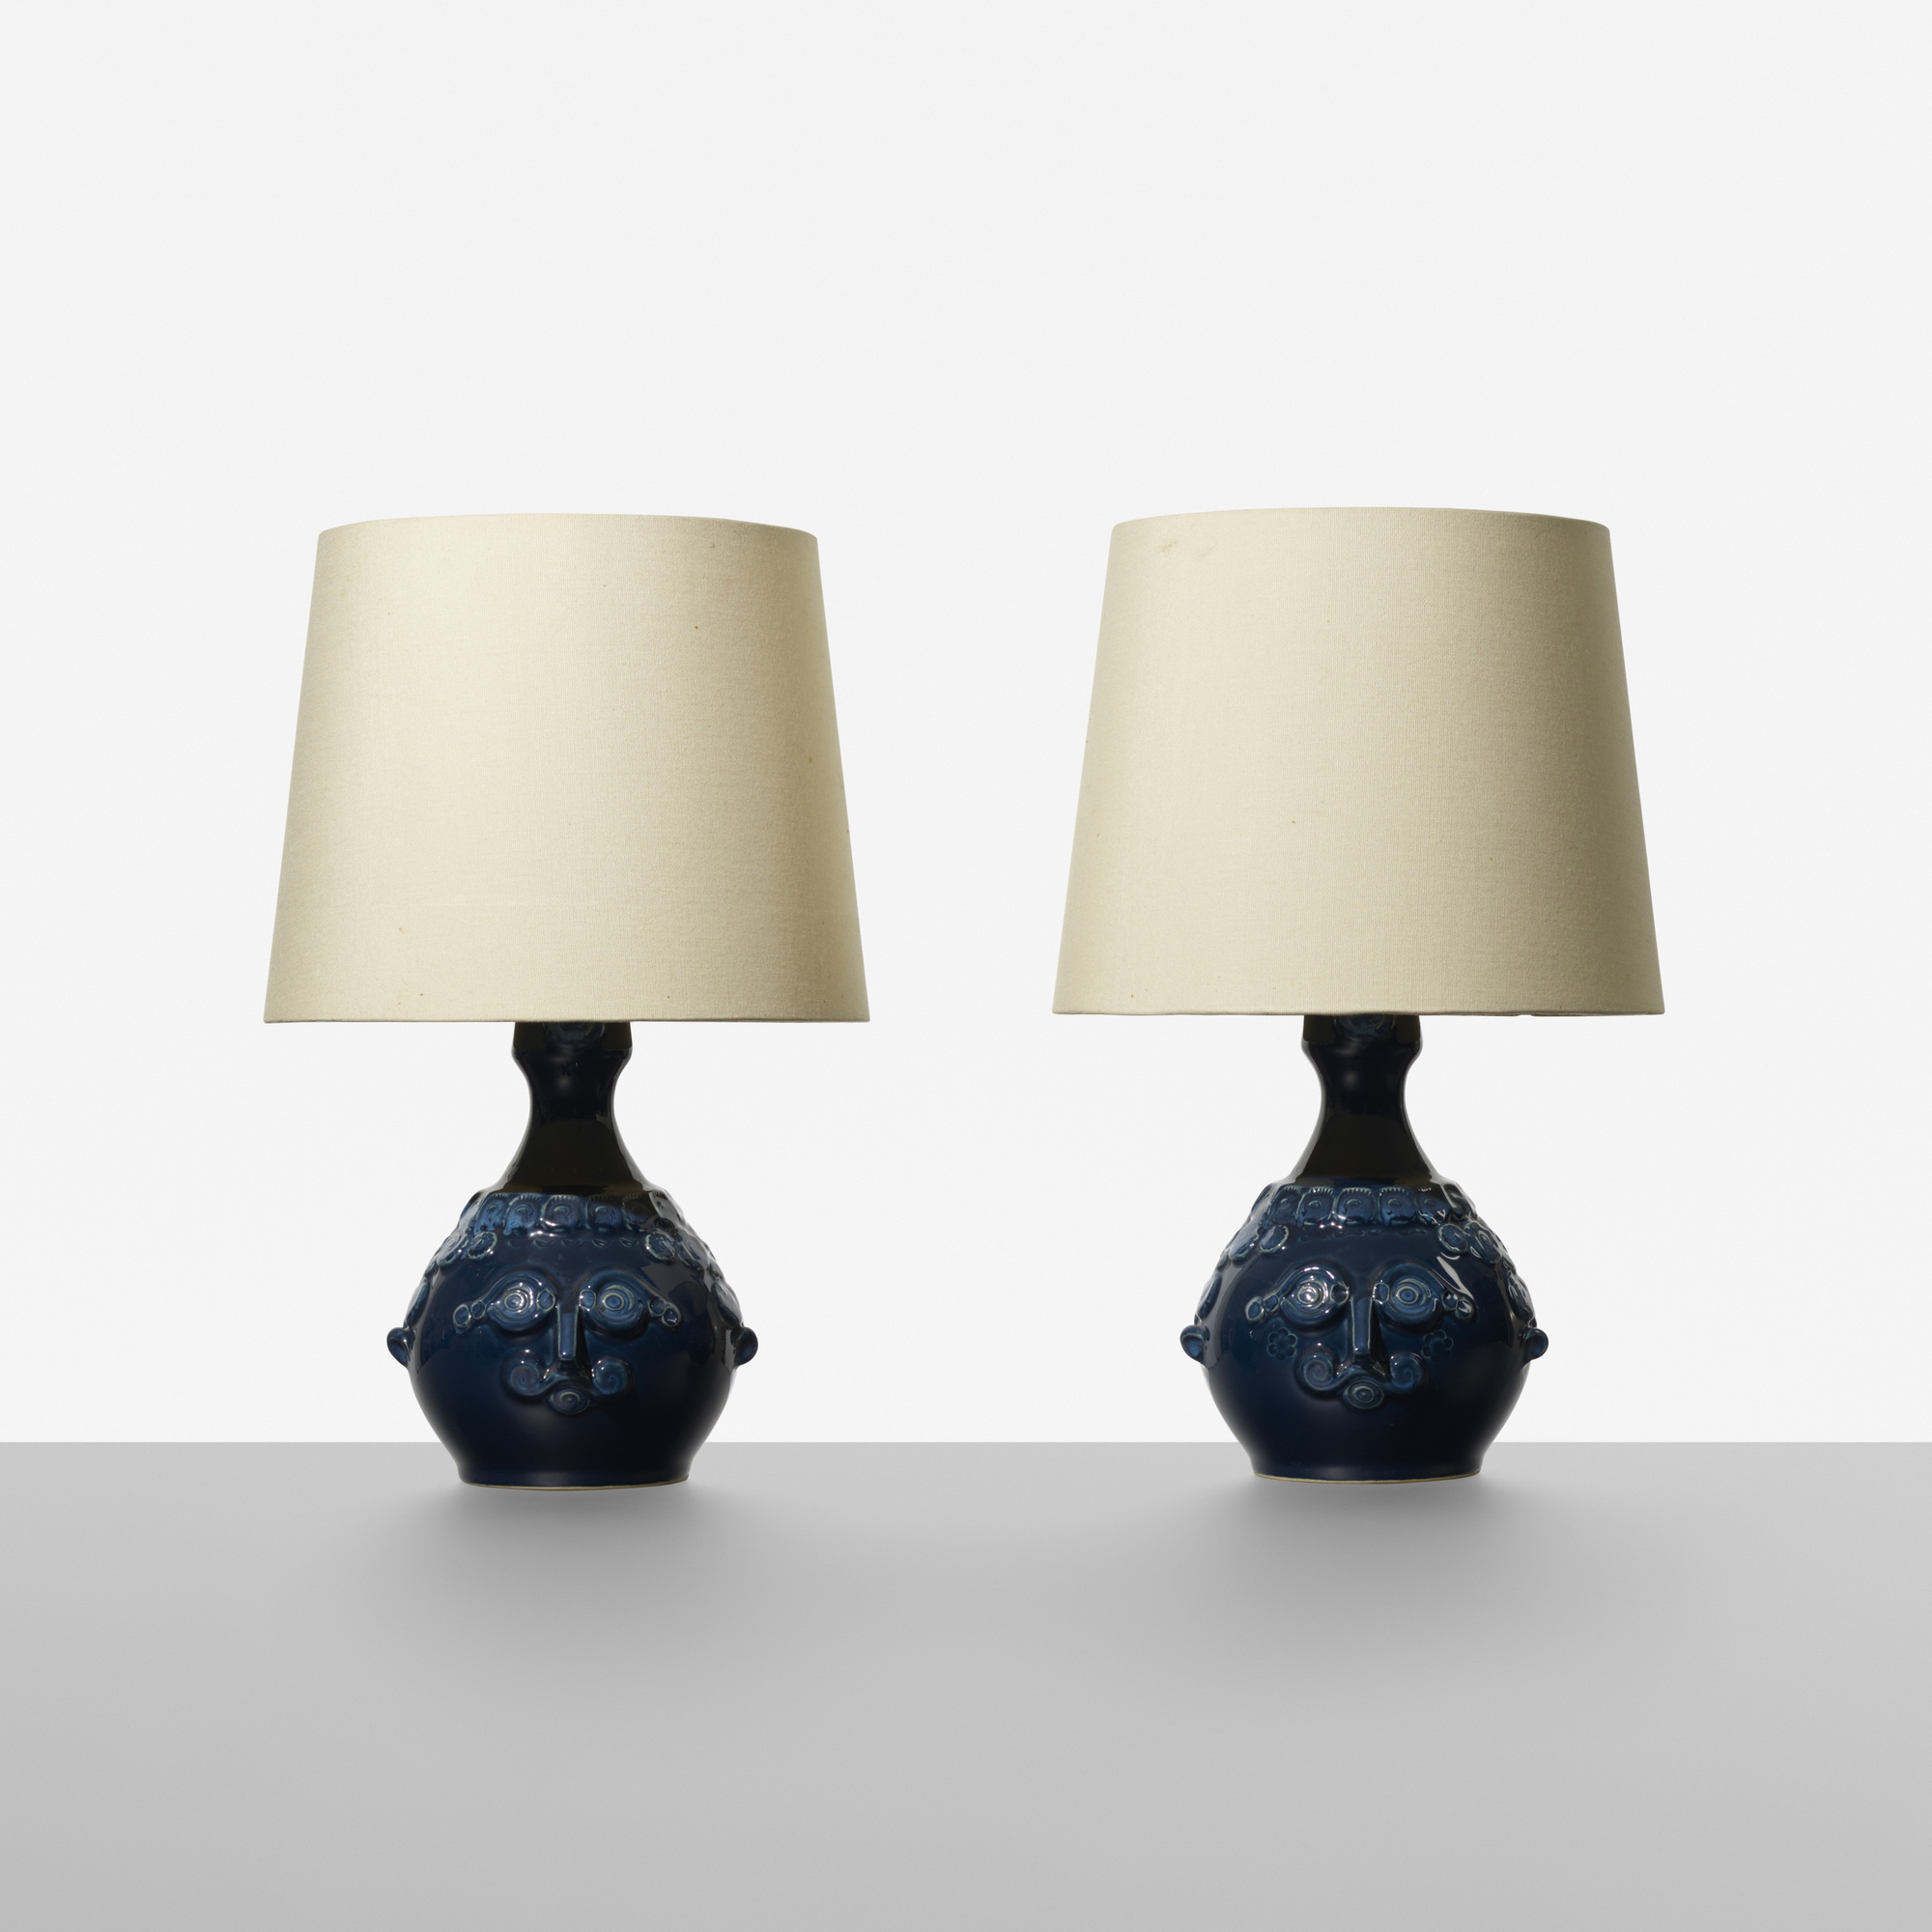 153: Bjørn Wiinblad / table lamps, pair (1 of 1)